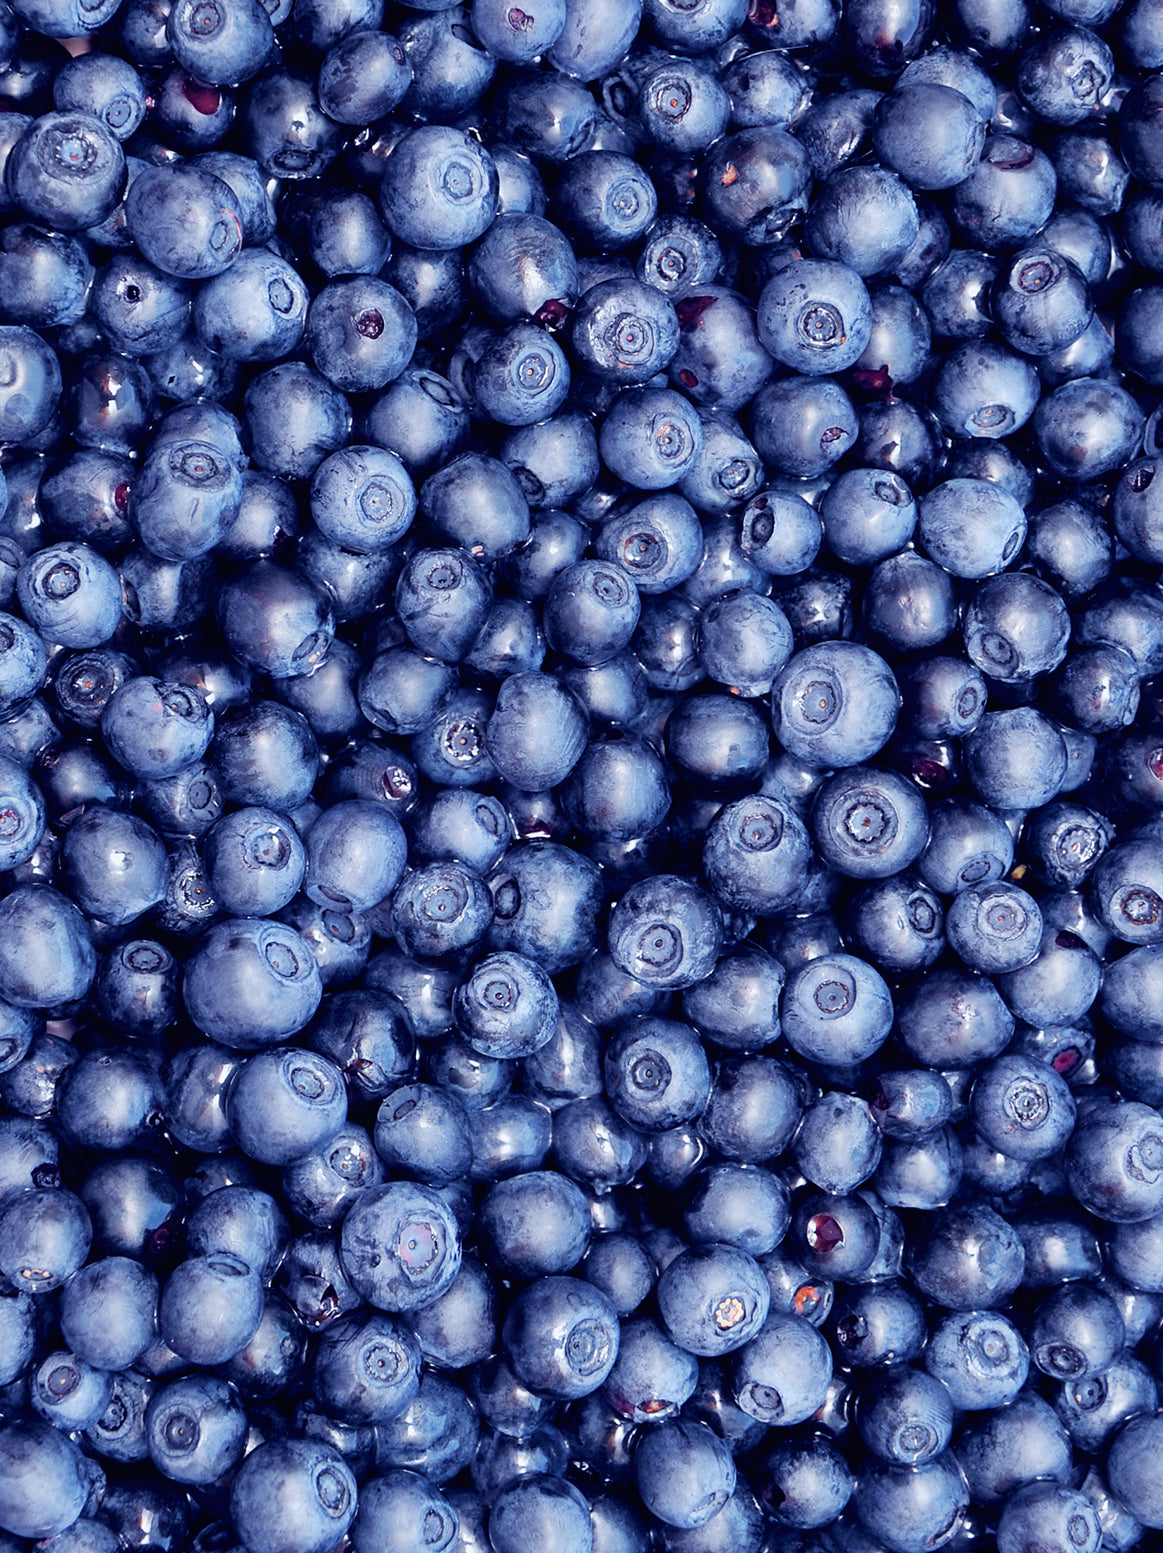 Blueberries - 1/2 pint